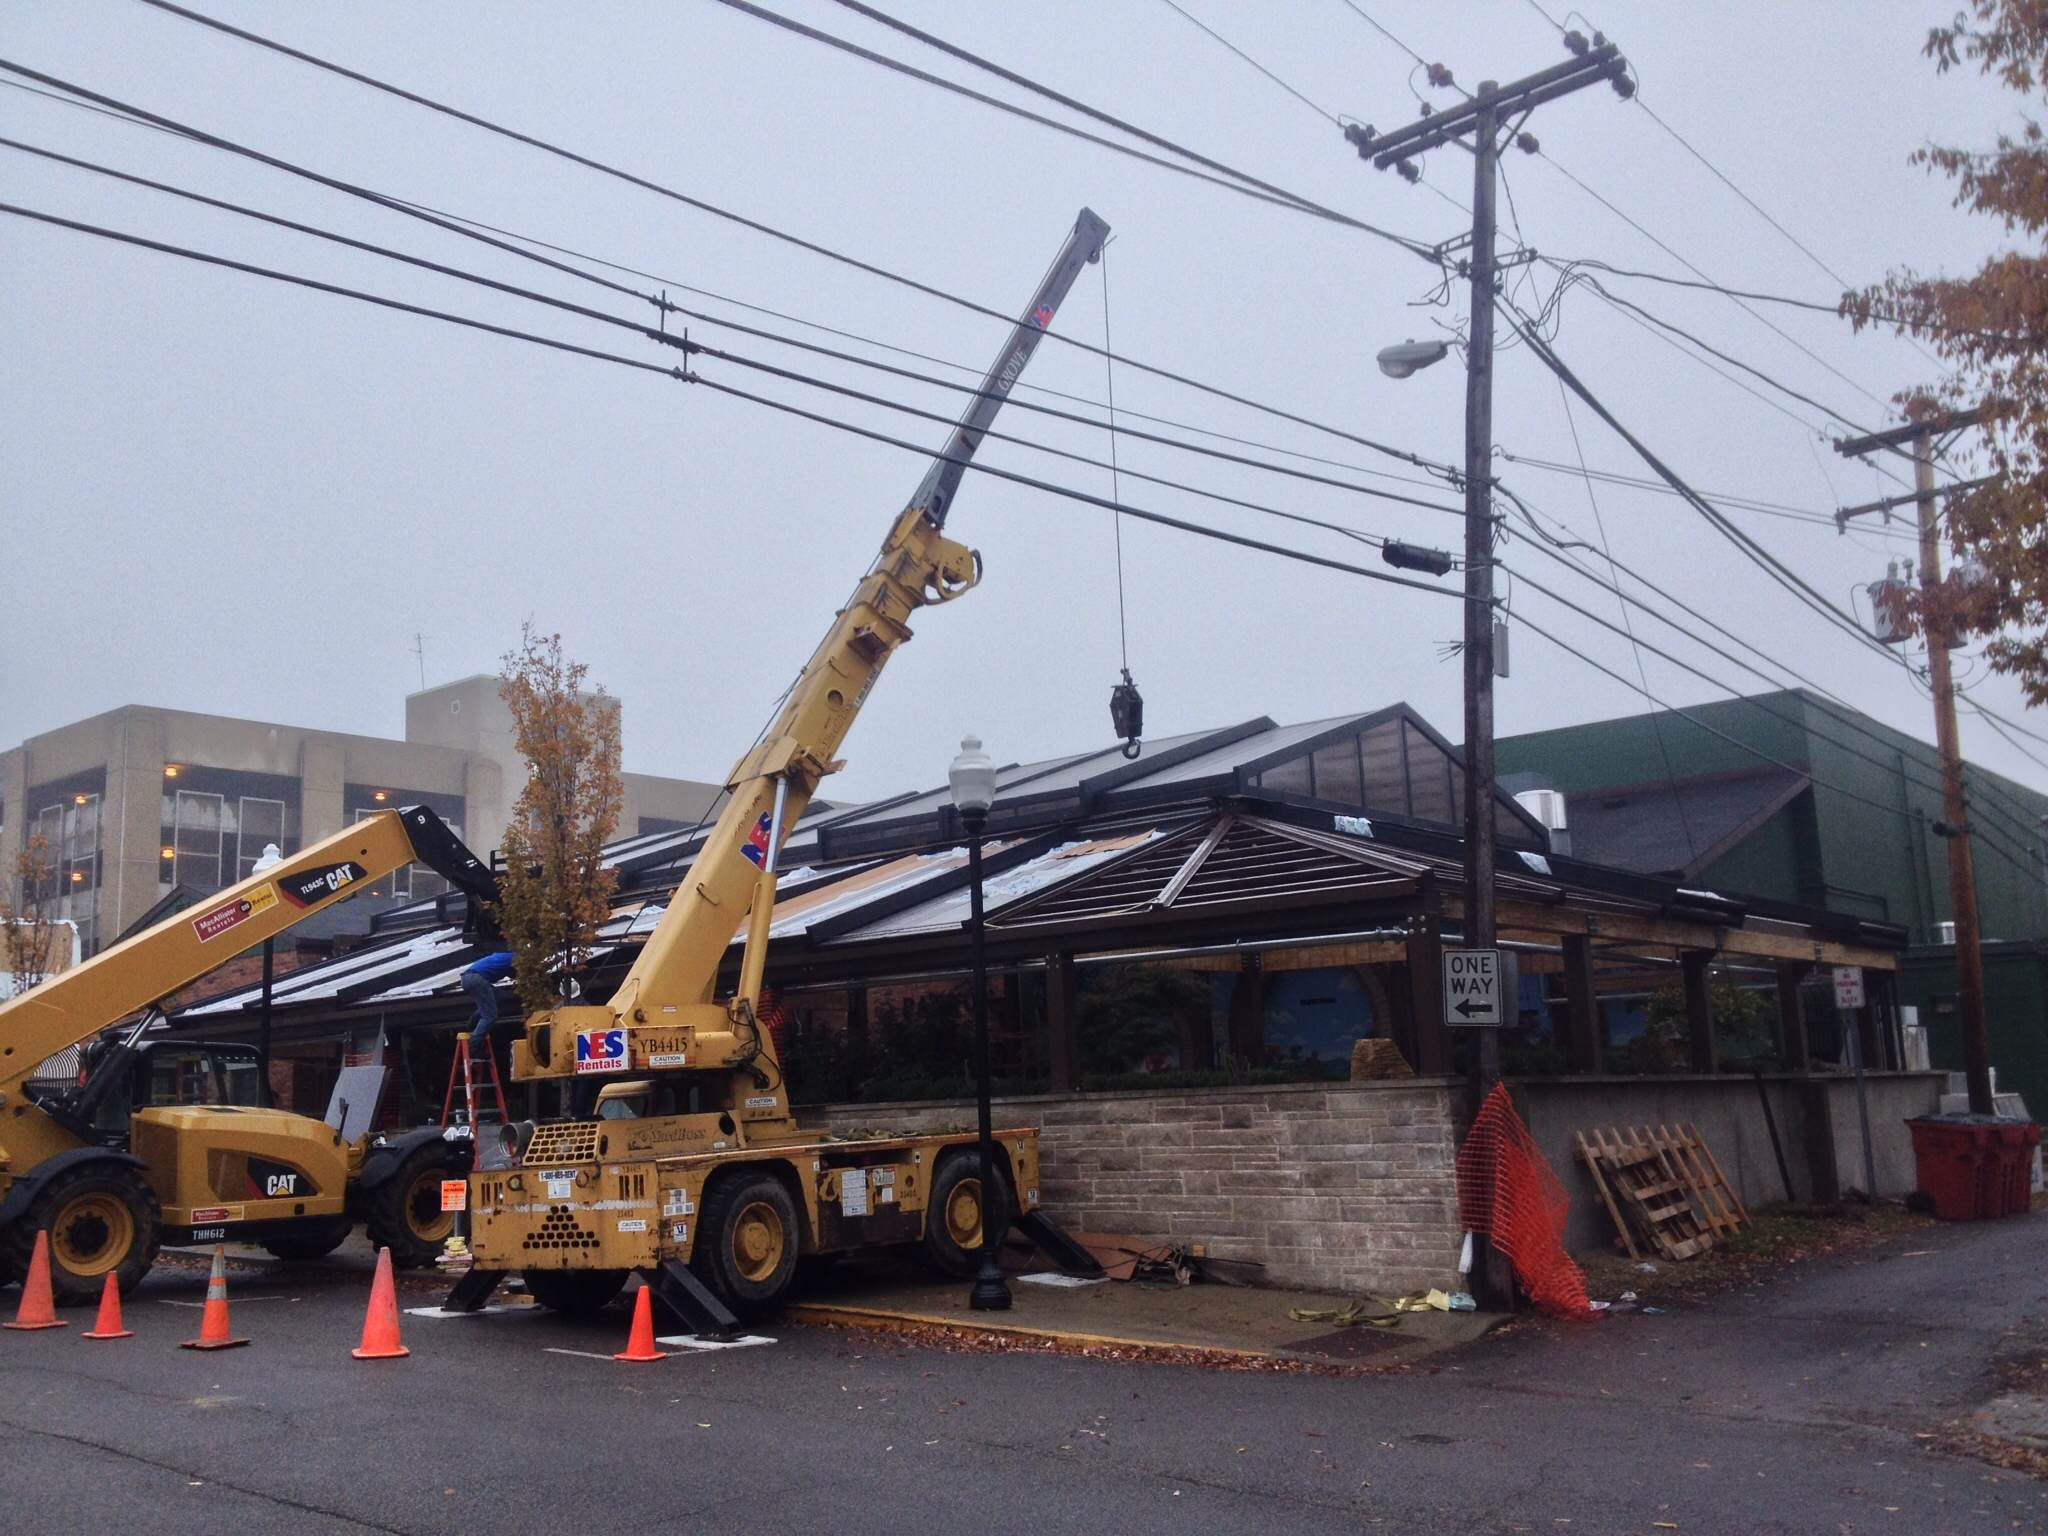 Installation of Kilroys year round patio structure